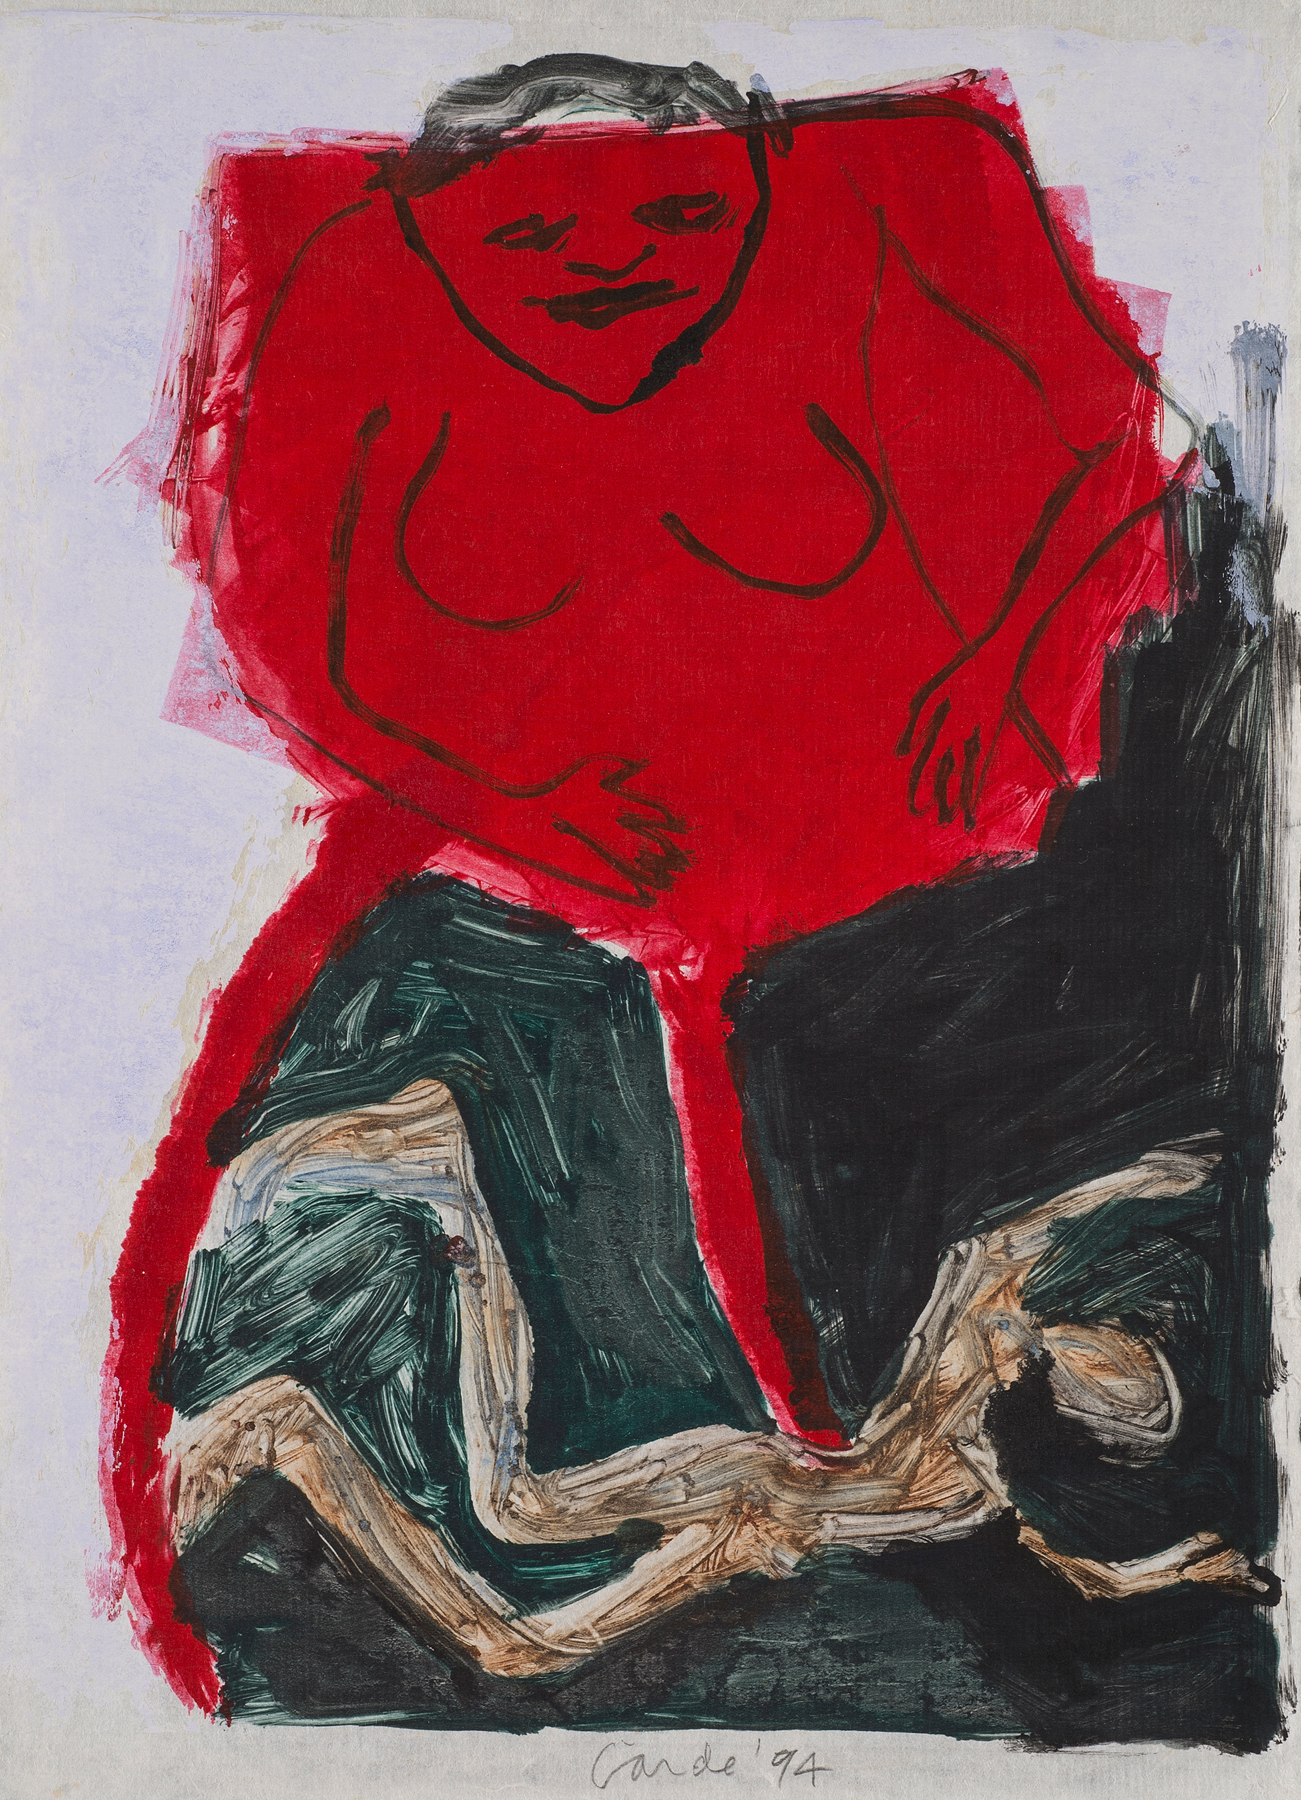 Untitled , 1987/1994. Monotype on paper, 17.5 x 13 in. (44 x 33 cm)